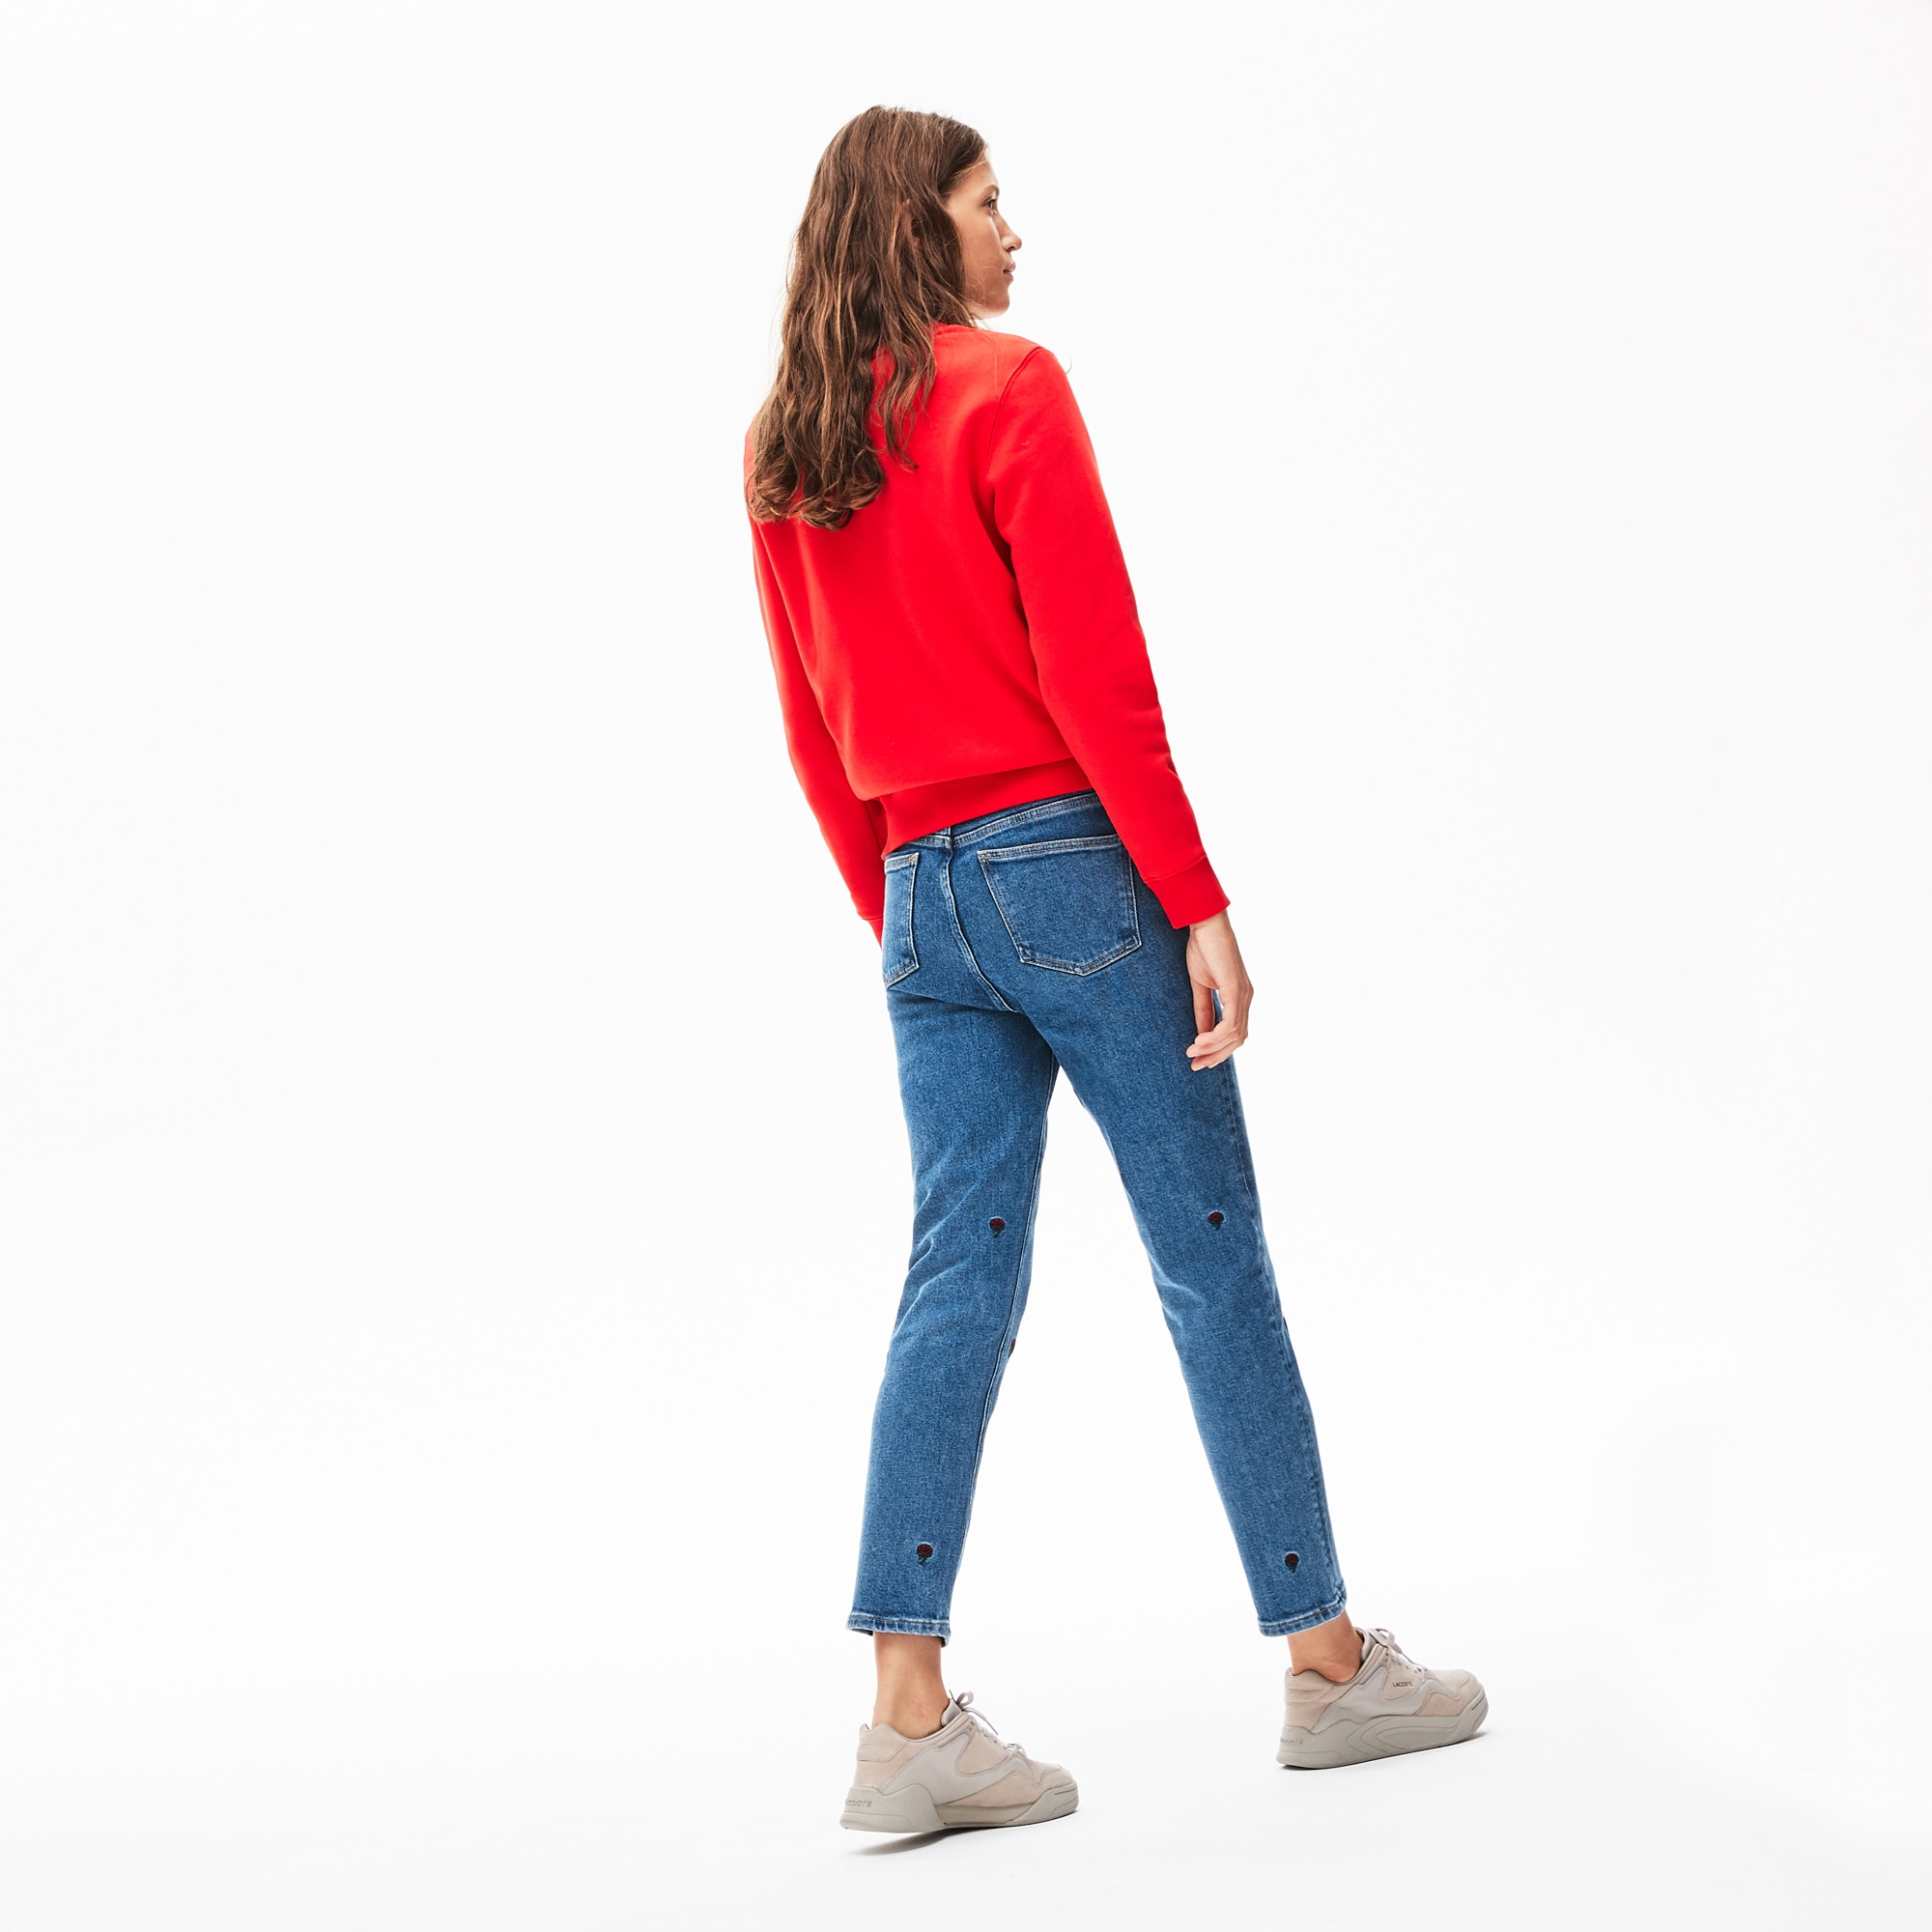 Damen Stretch-Baumwoll-Jeans mit Stickerei LACOSTE L!VE